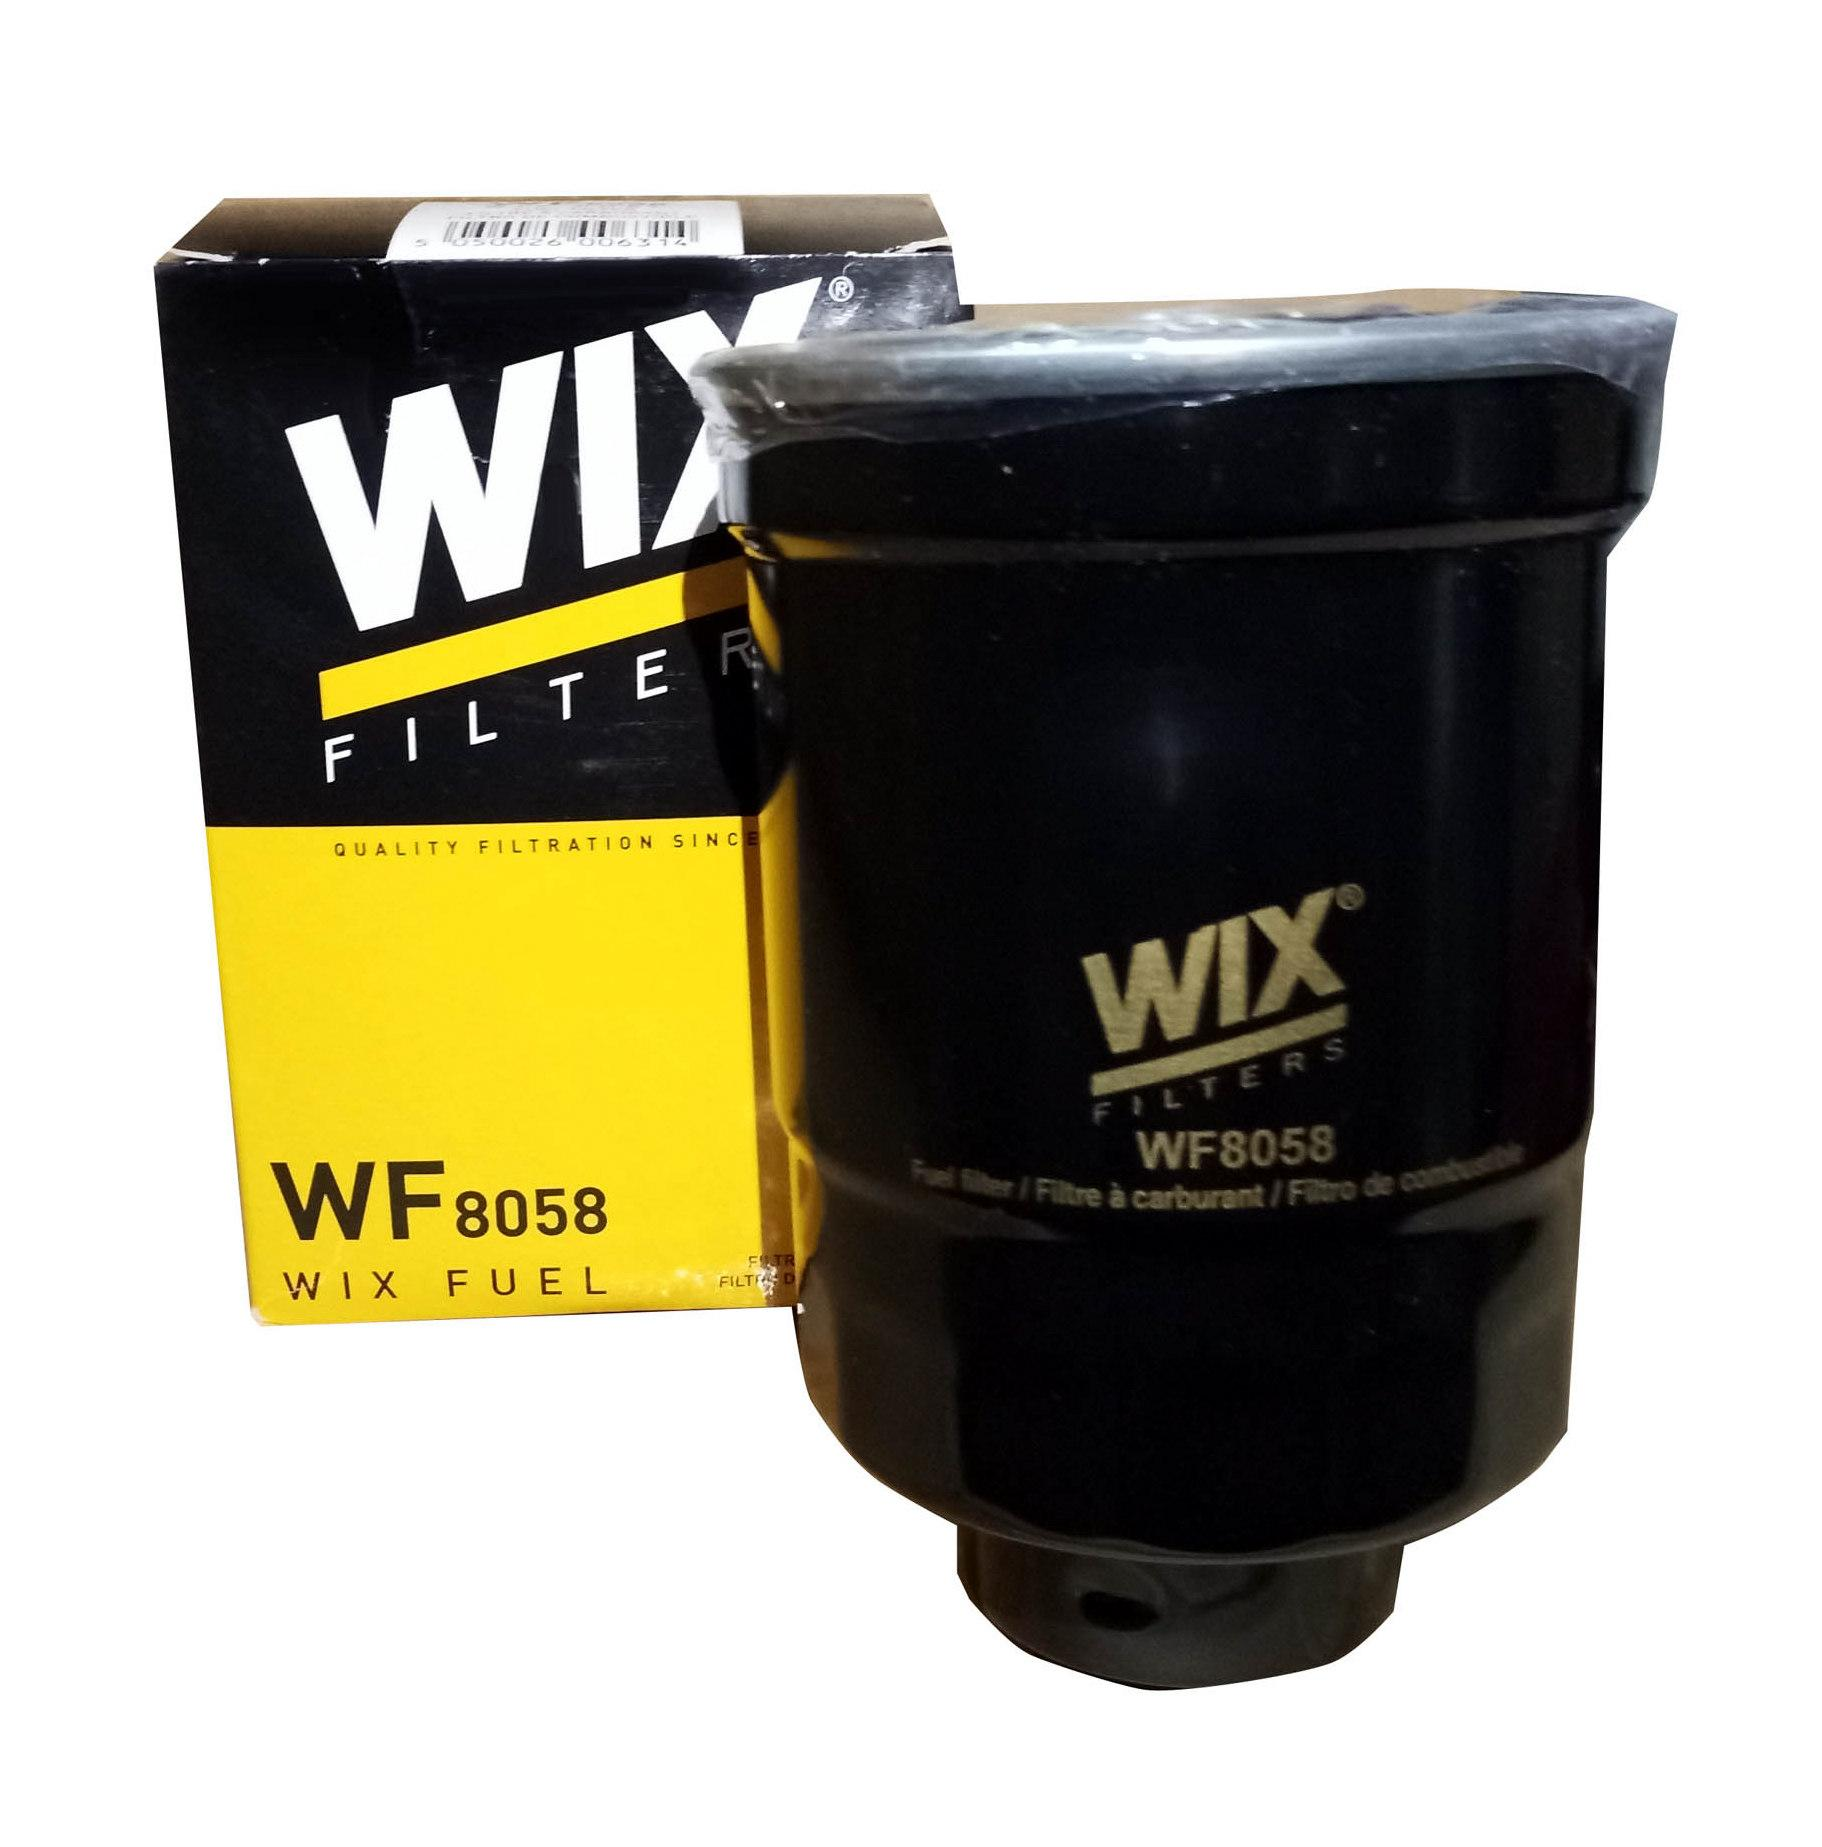 Fuel Filter For Sale Gas Online Brands Prices Reviews In Housing 1994 7 3 Wix Wf8058 Mitsubishi L300 Adventure Pajero Fieldmaster